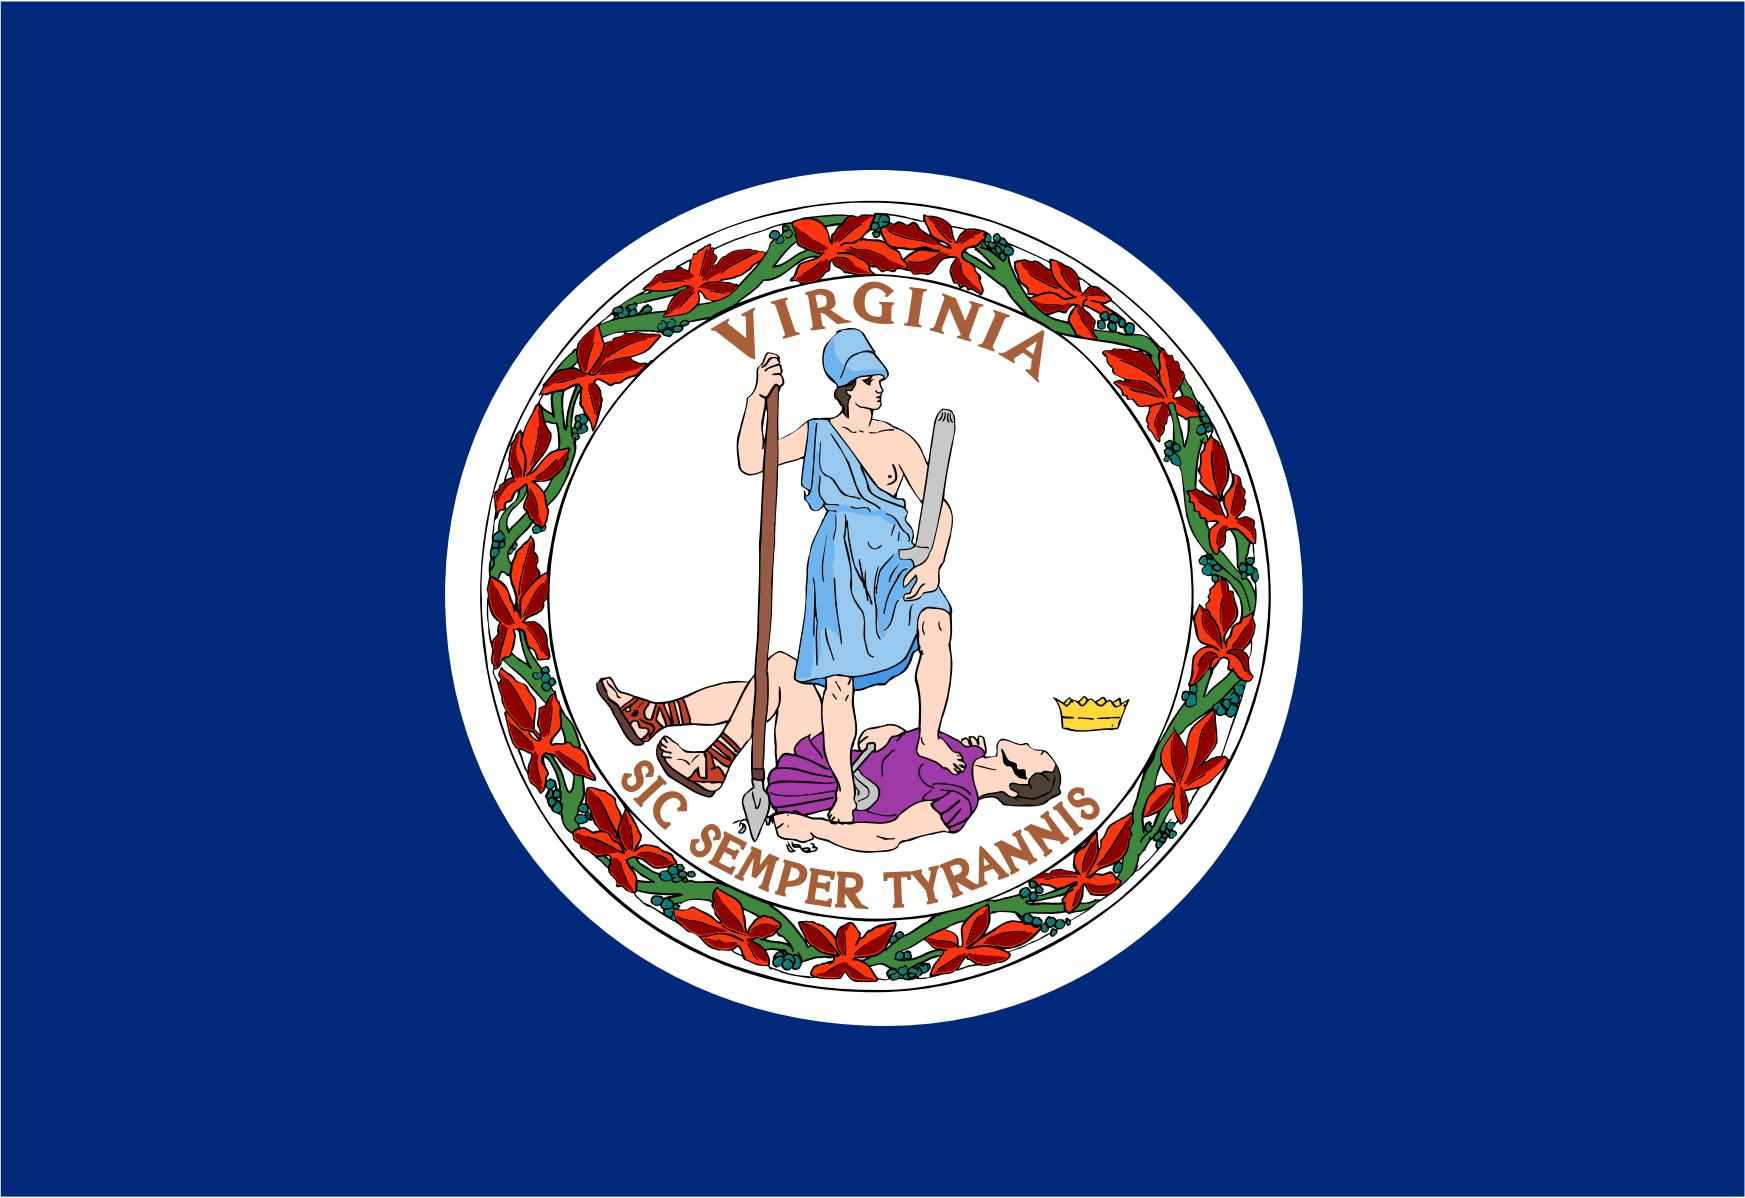 Virginia State Flag and Seal